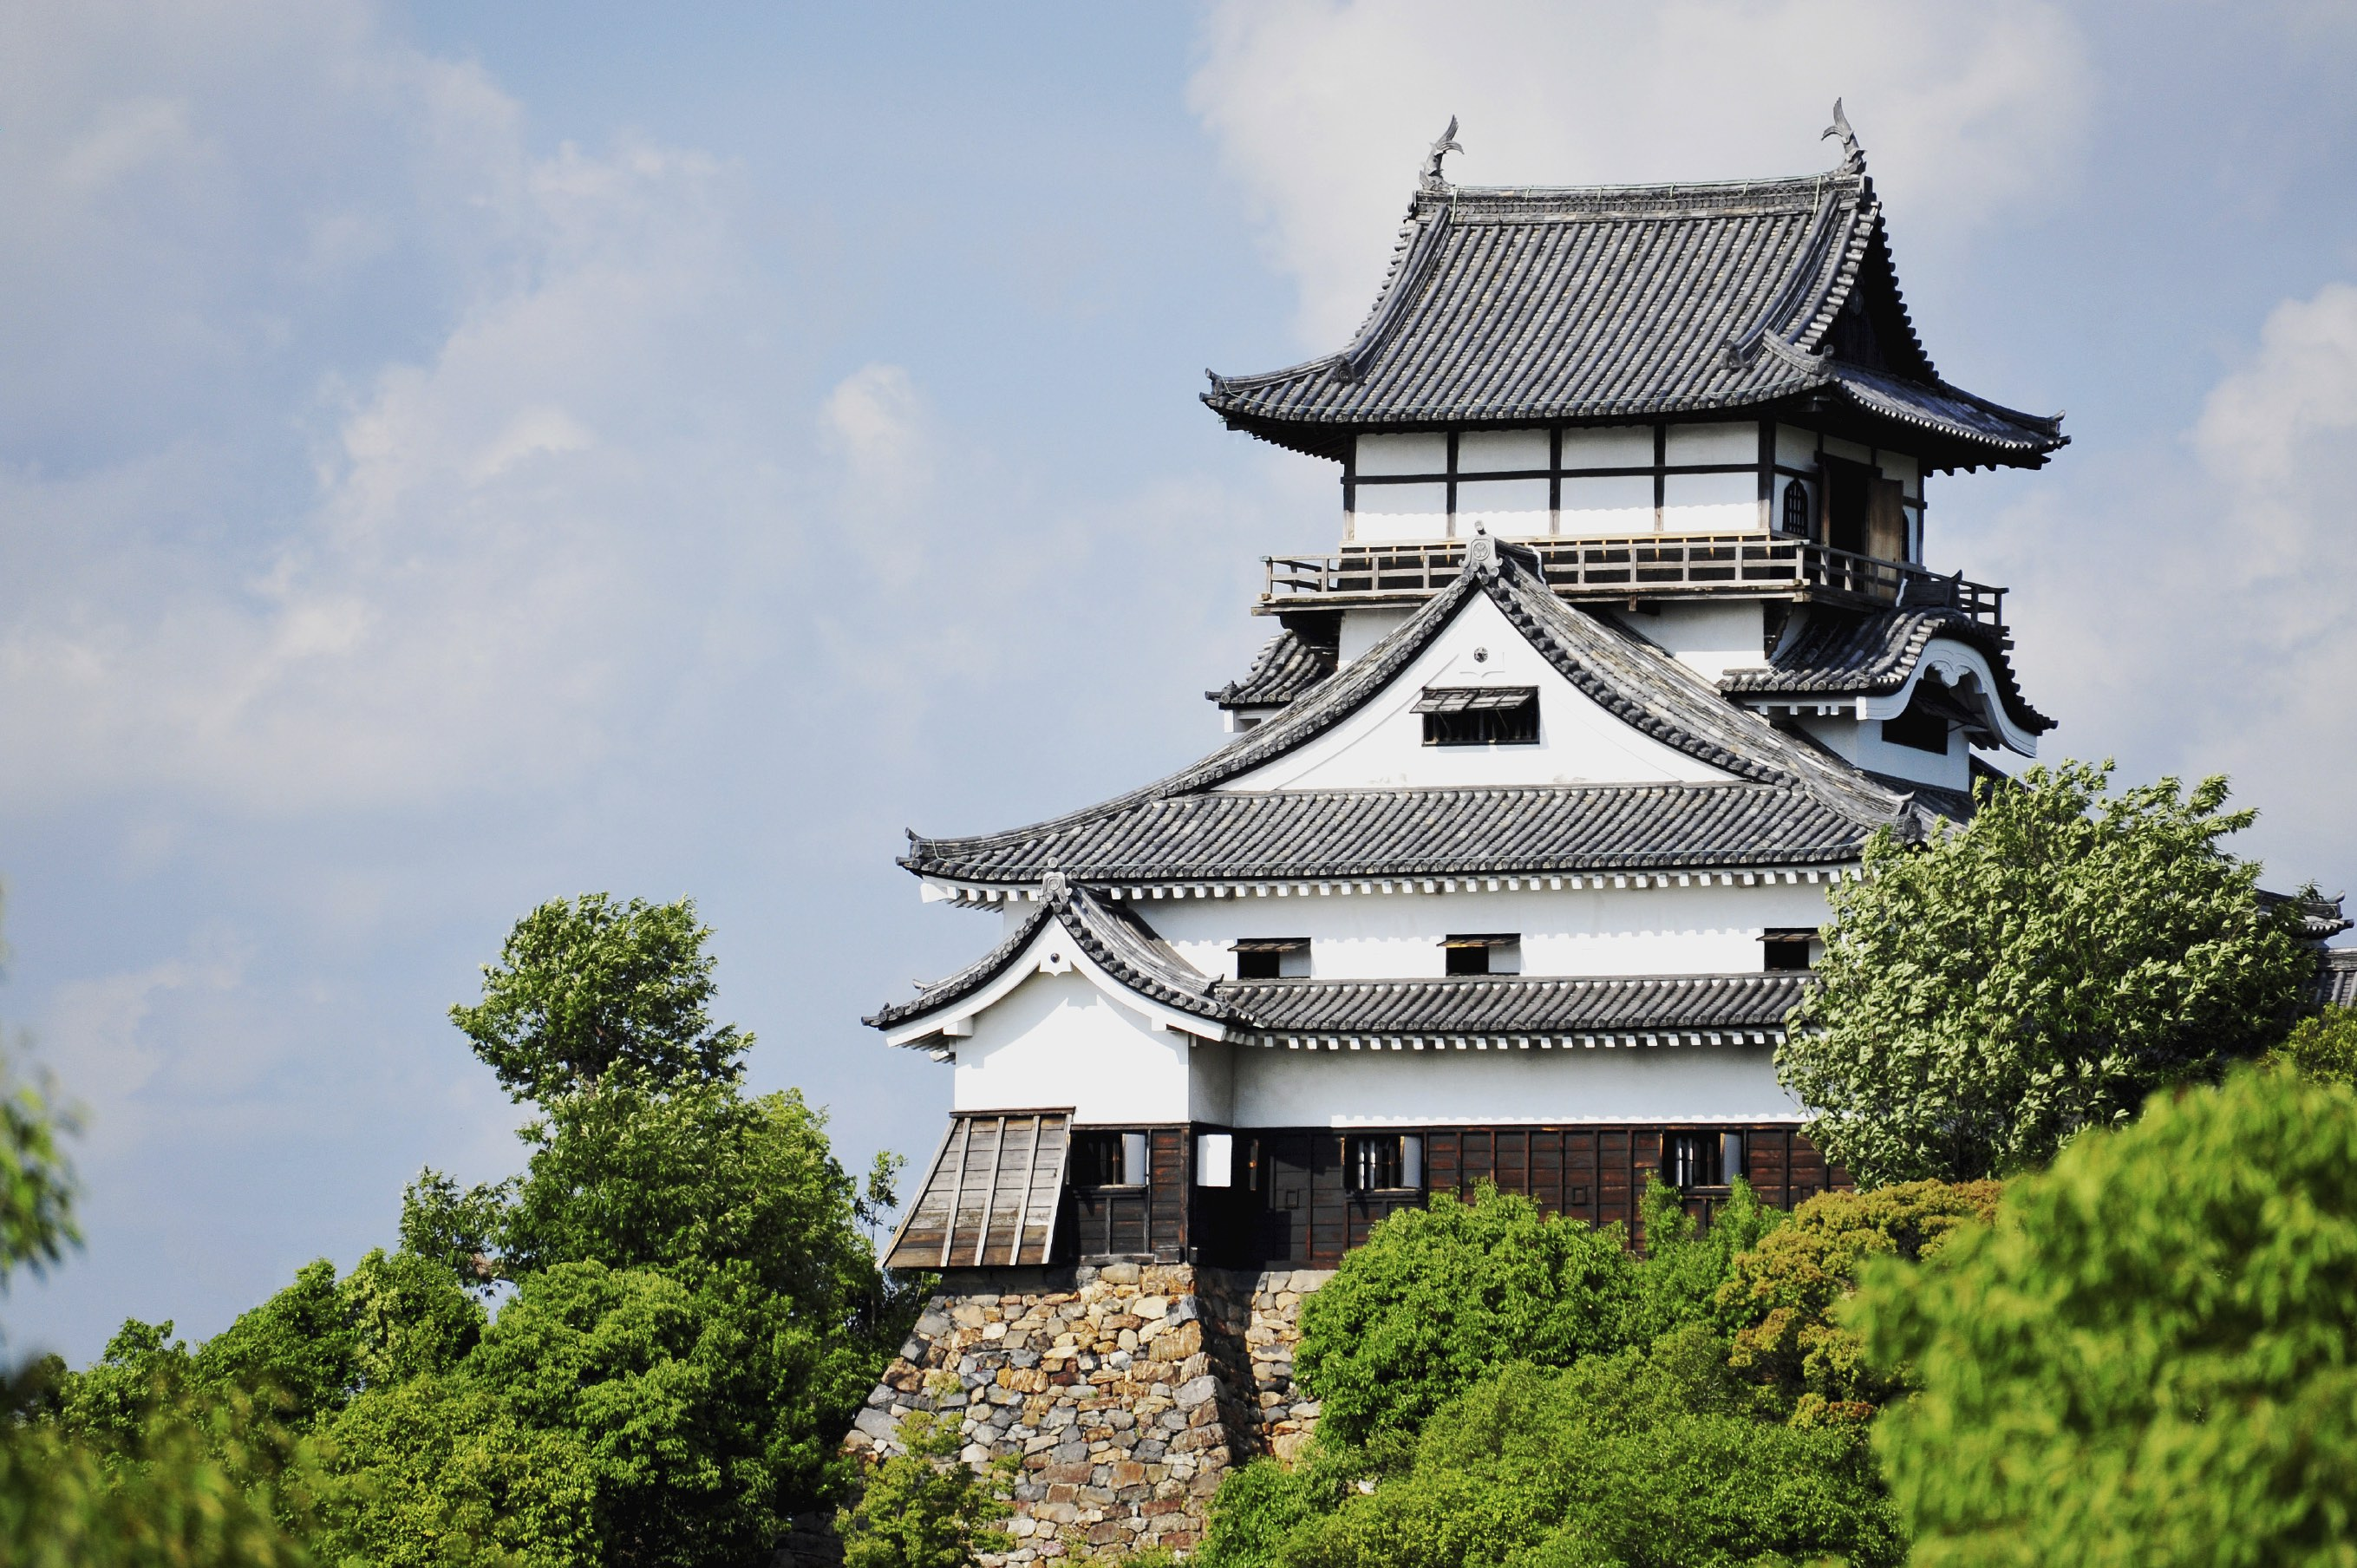 Inuyama Castle in Aichi is one of Japan's oldest surviving wooden castles.